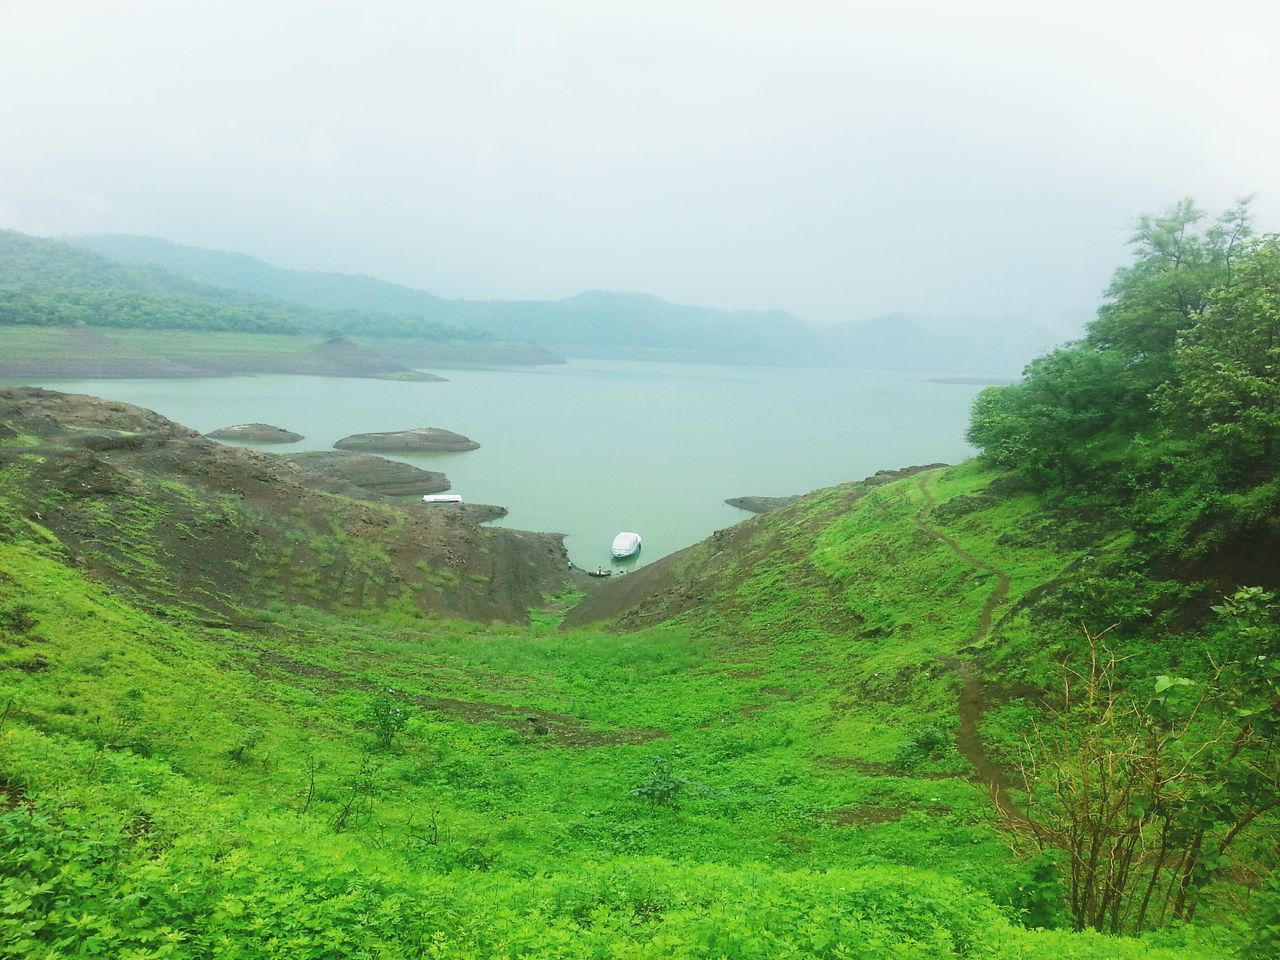 nature, green color, beauty in nature, water, tranquil scene, tranquility, scenics, lake, mountain, high angle view, tree, outdoors, growth, no people, day, grass, plant, fog, landscape, sky